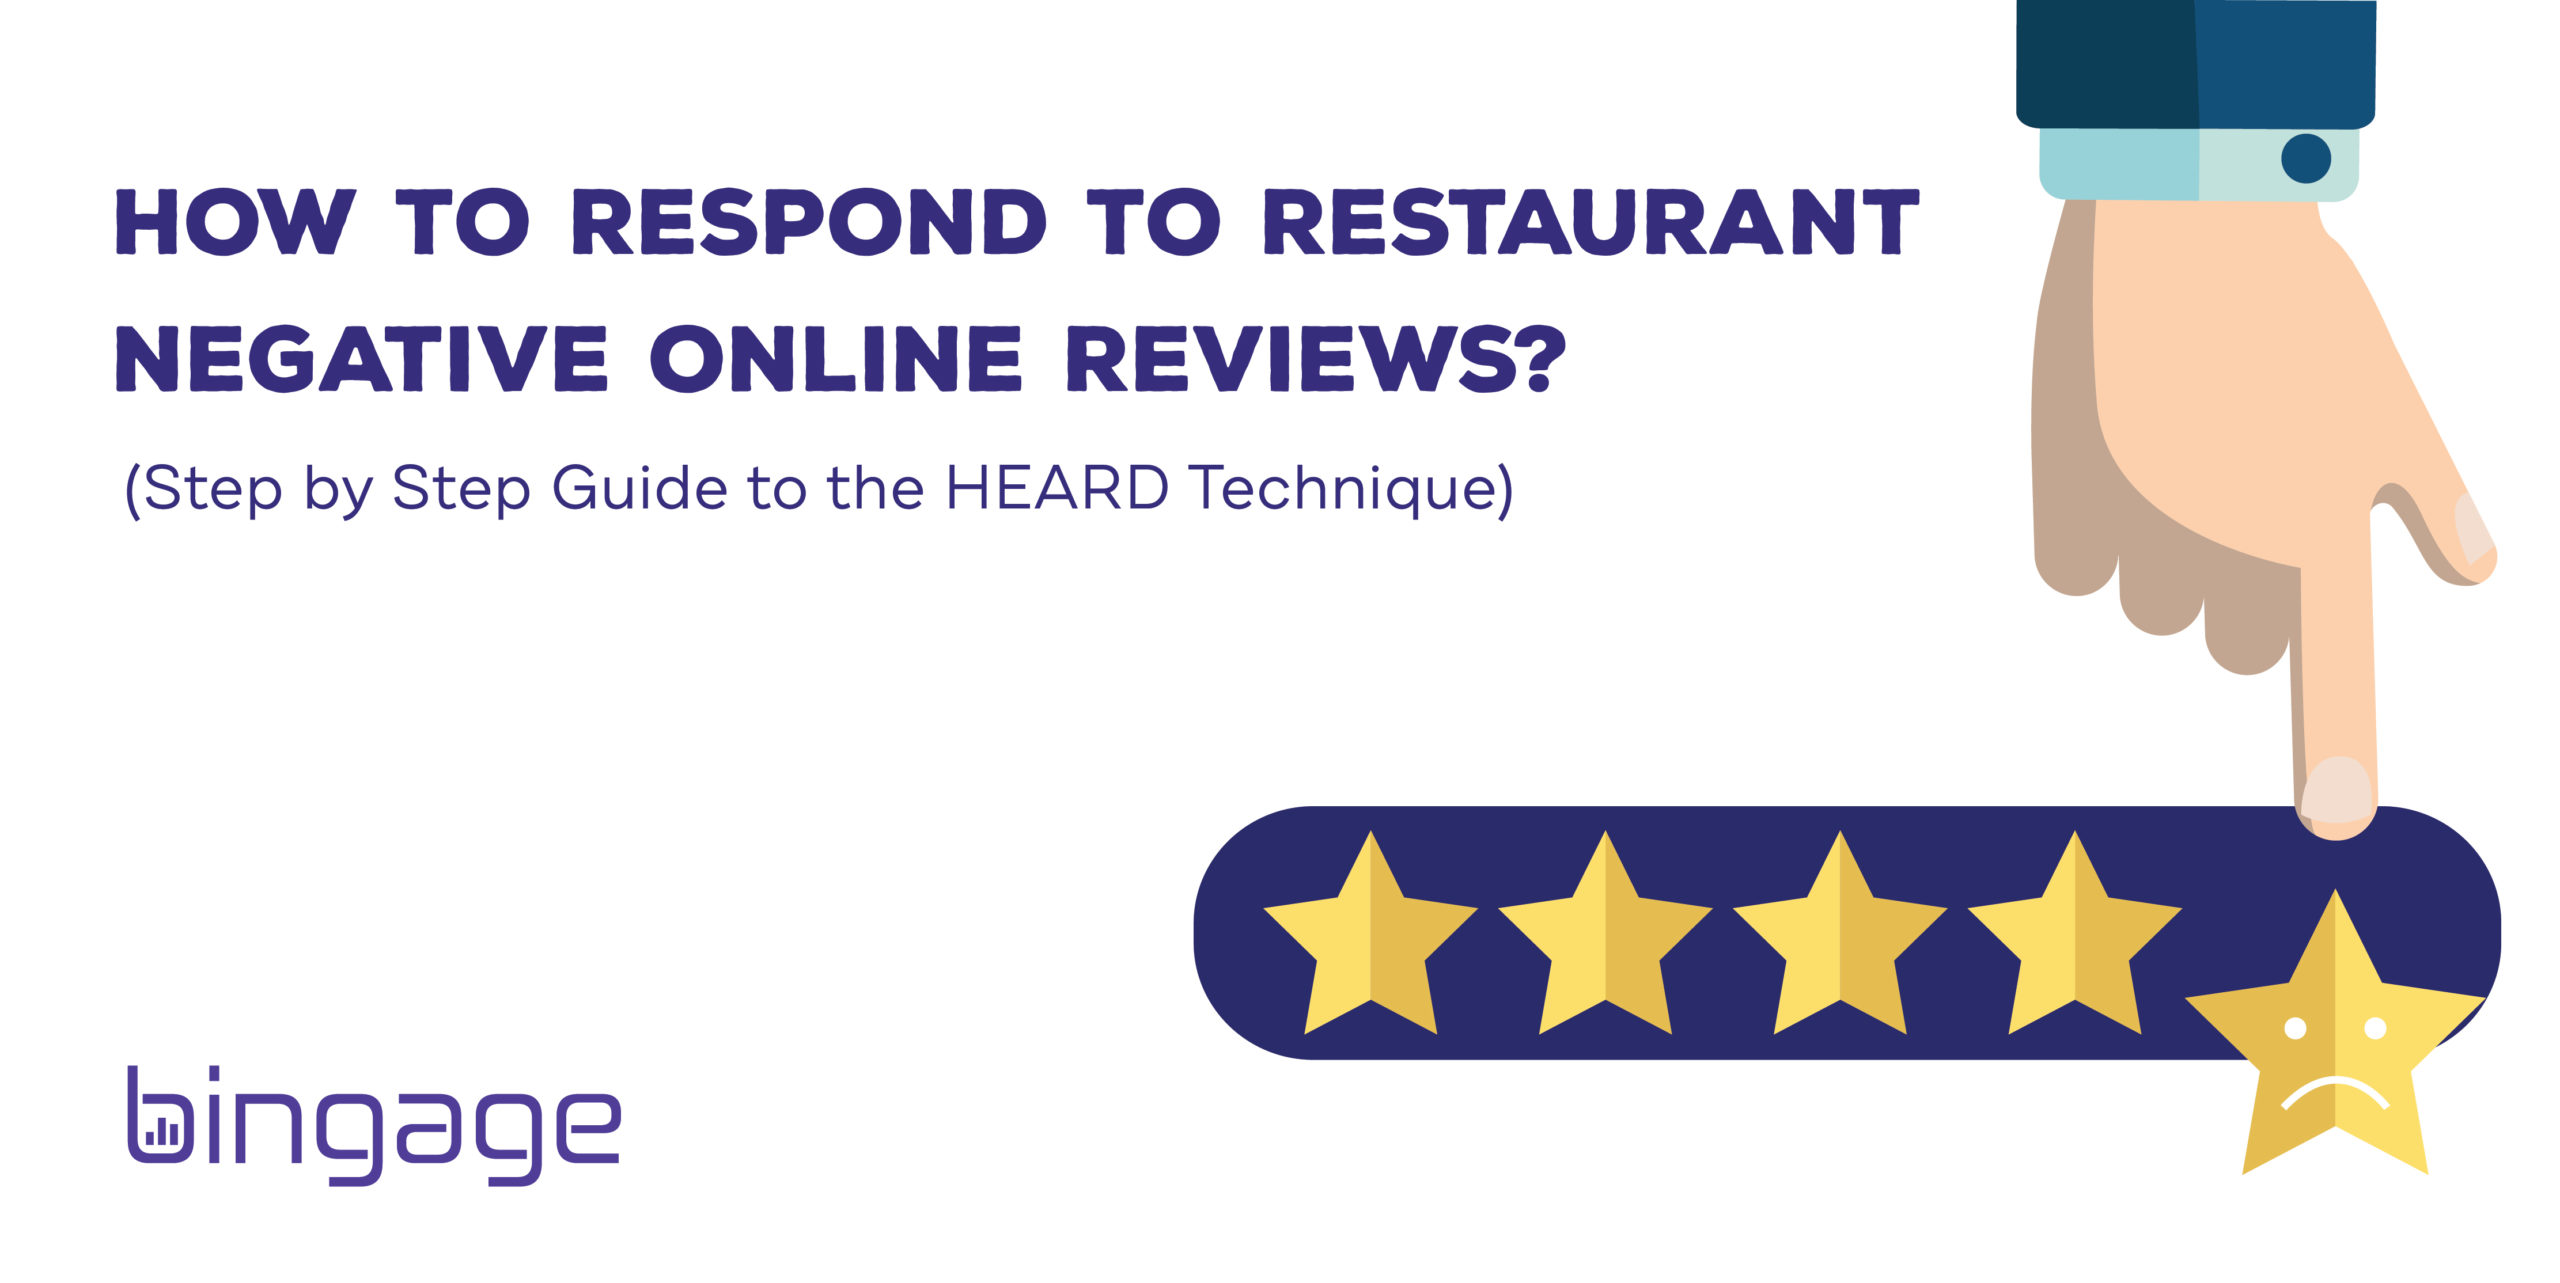 How to Deal with Negative Restaurant Reviews?